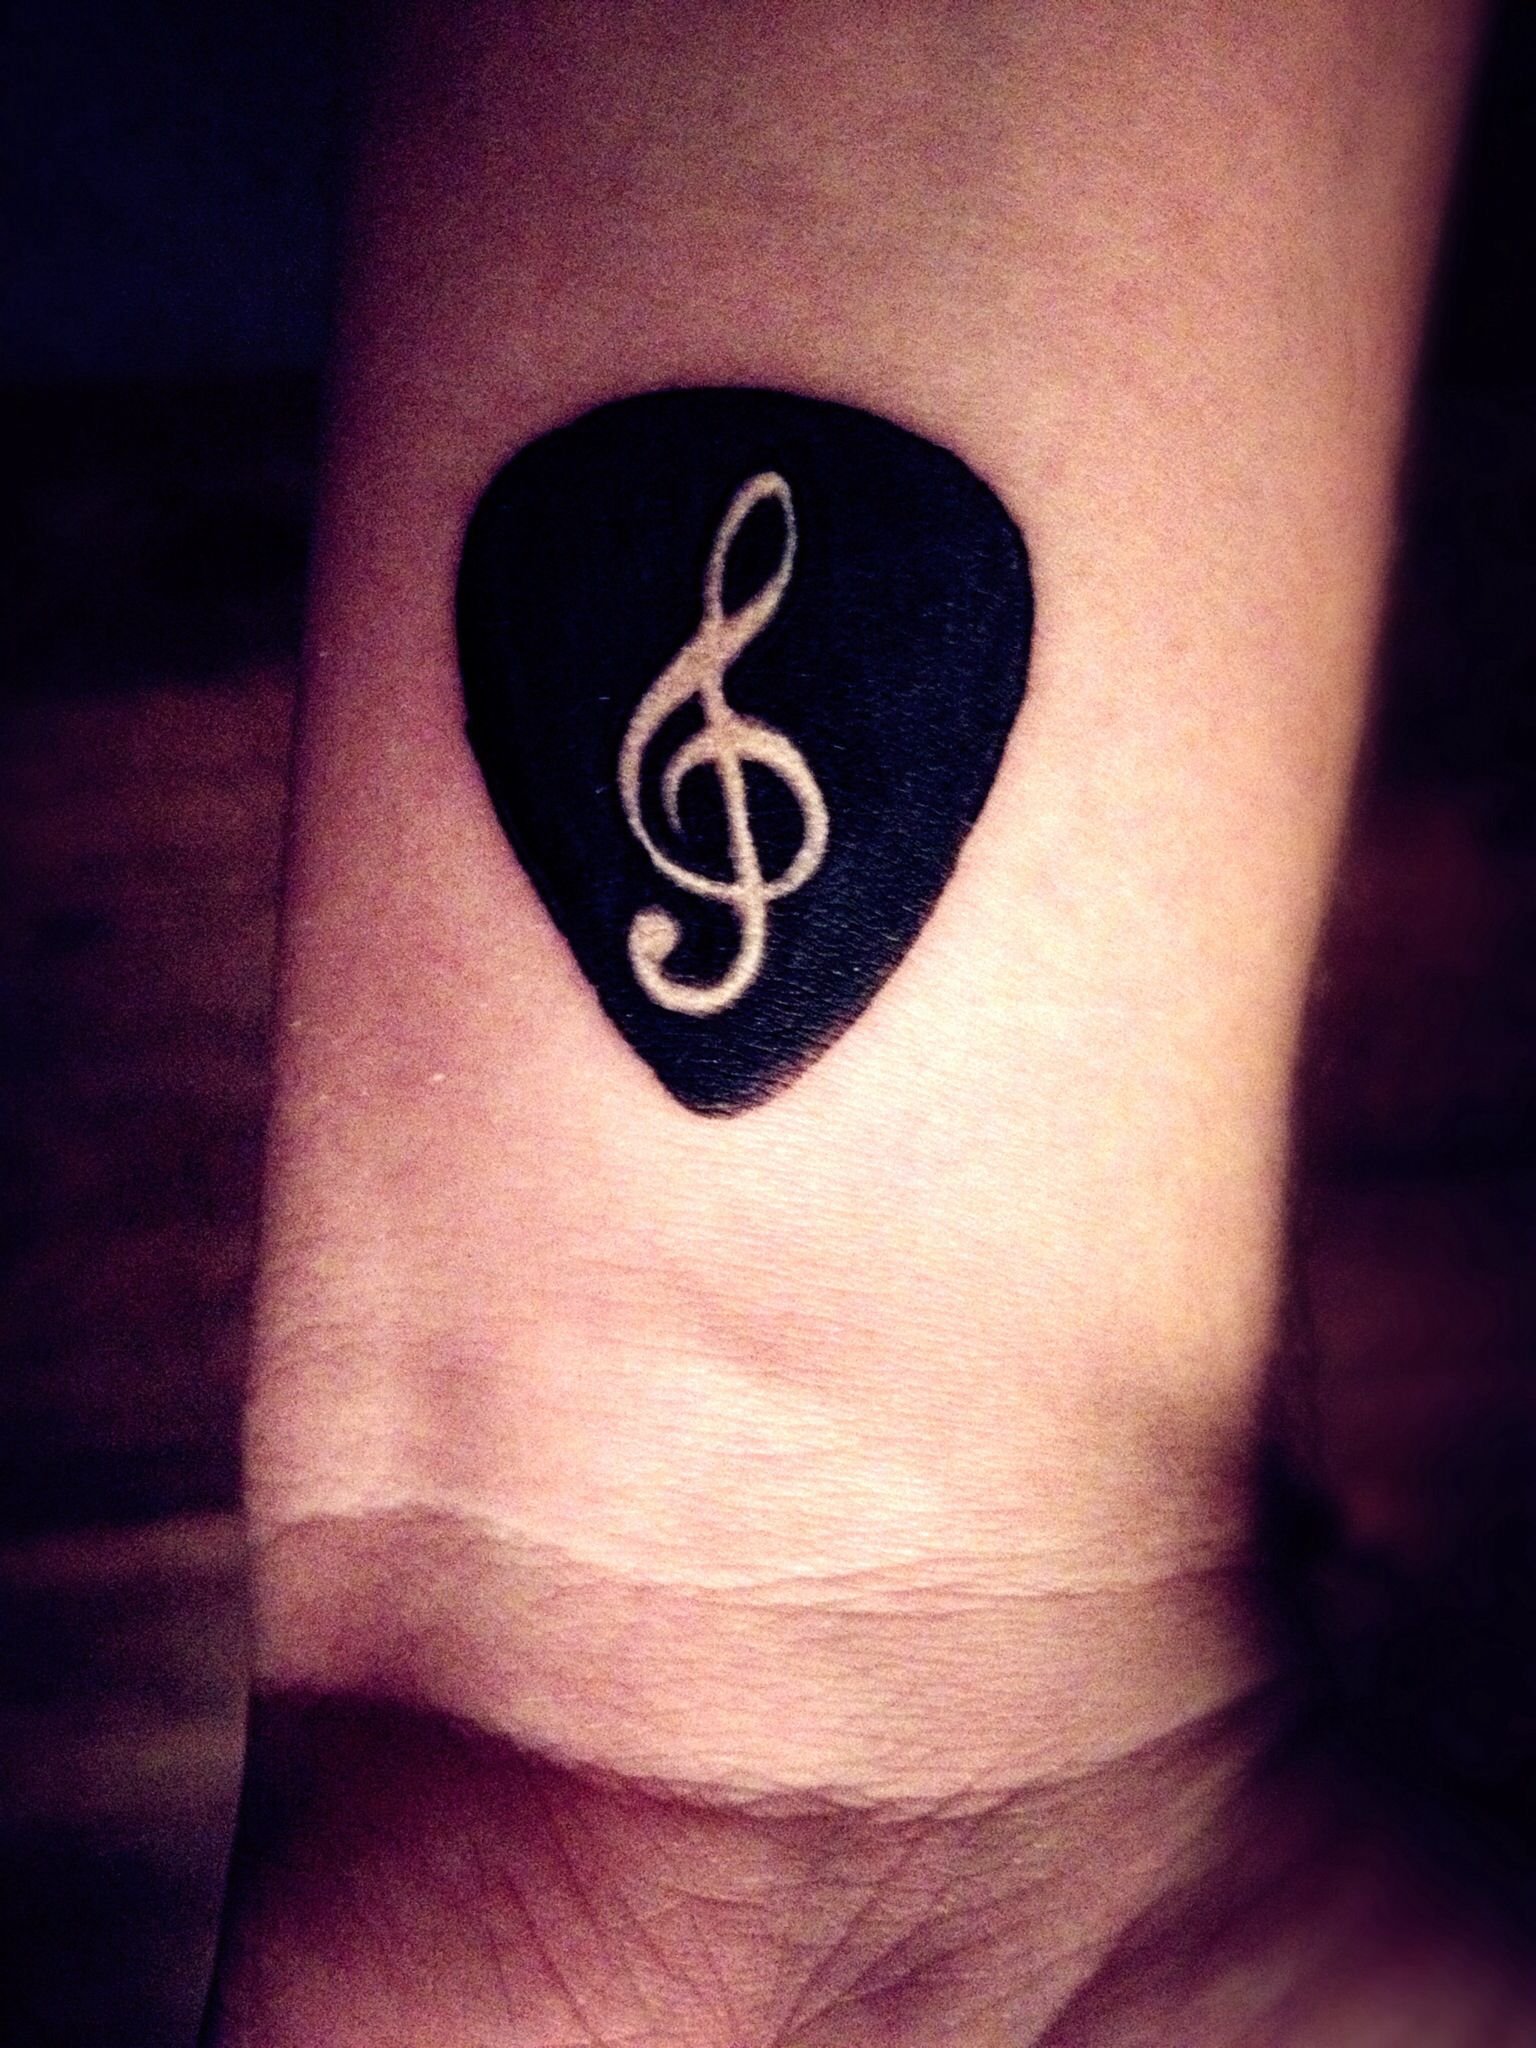 guitar pick tattoo on wrist i think i want frankie 39 s initials in the center tattoos henna. Black Bedroom Furniture Sets. Home Design Ideas